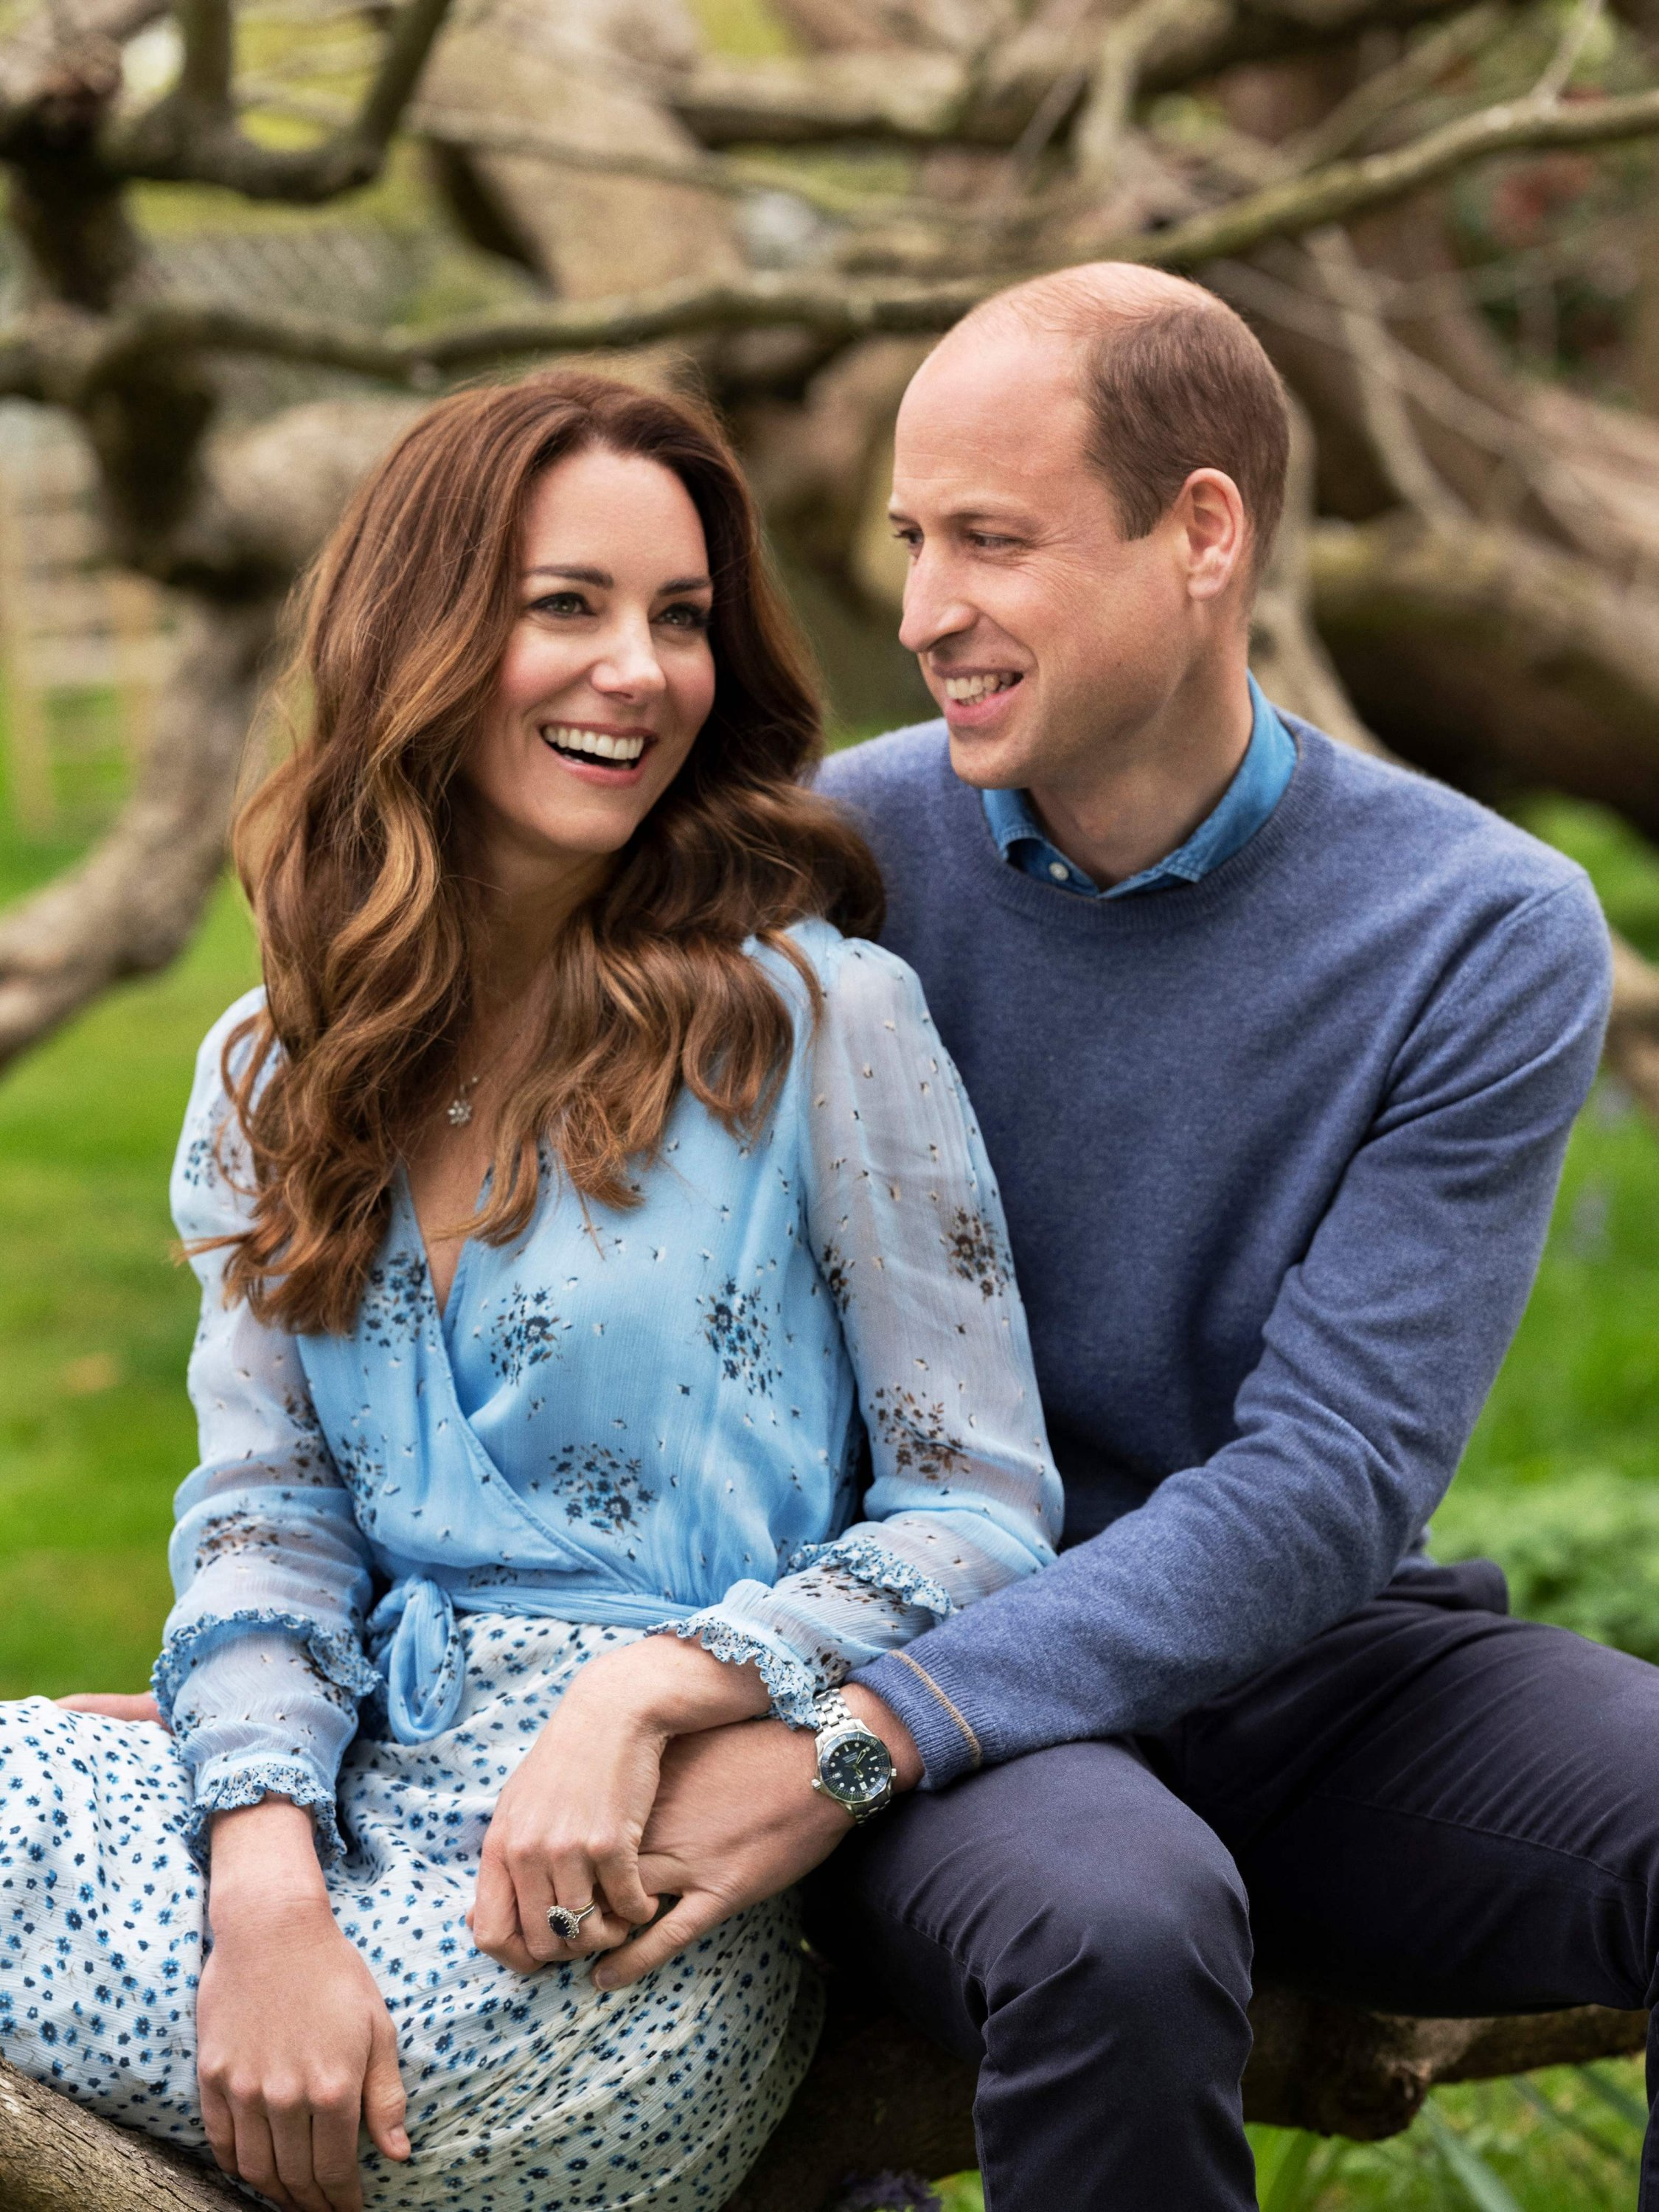 Catherine (L), Duchess of Cambridge, and Prince William, Duke of Cambridge, pose for a picture to celebrate their 10th wedding anniversary at Kensingtong Palace, London, the U.K., April 28, 2021. (Kensington Palace via AFP)